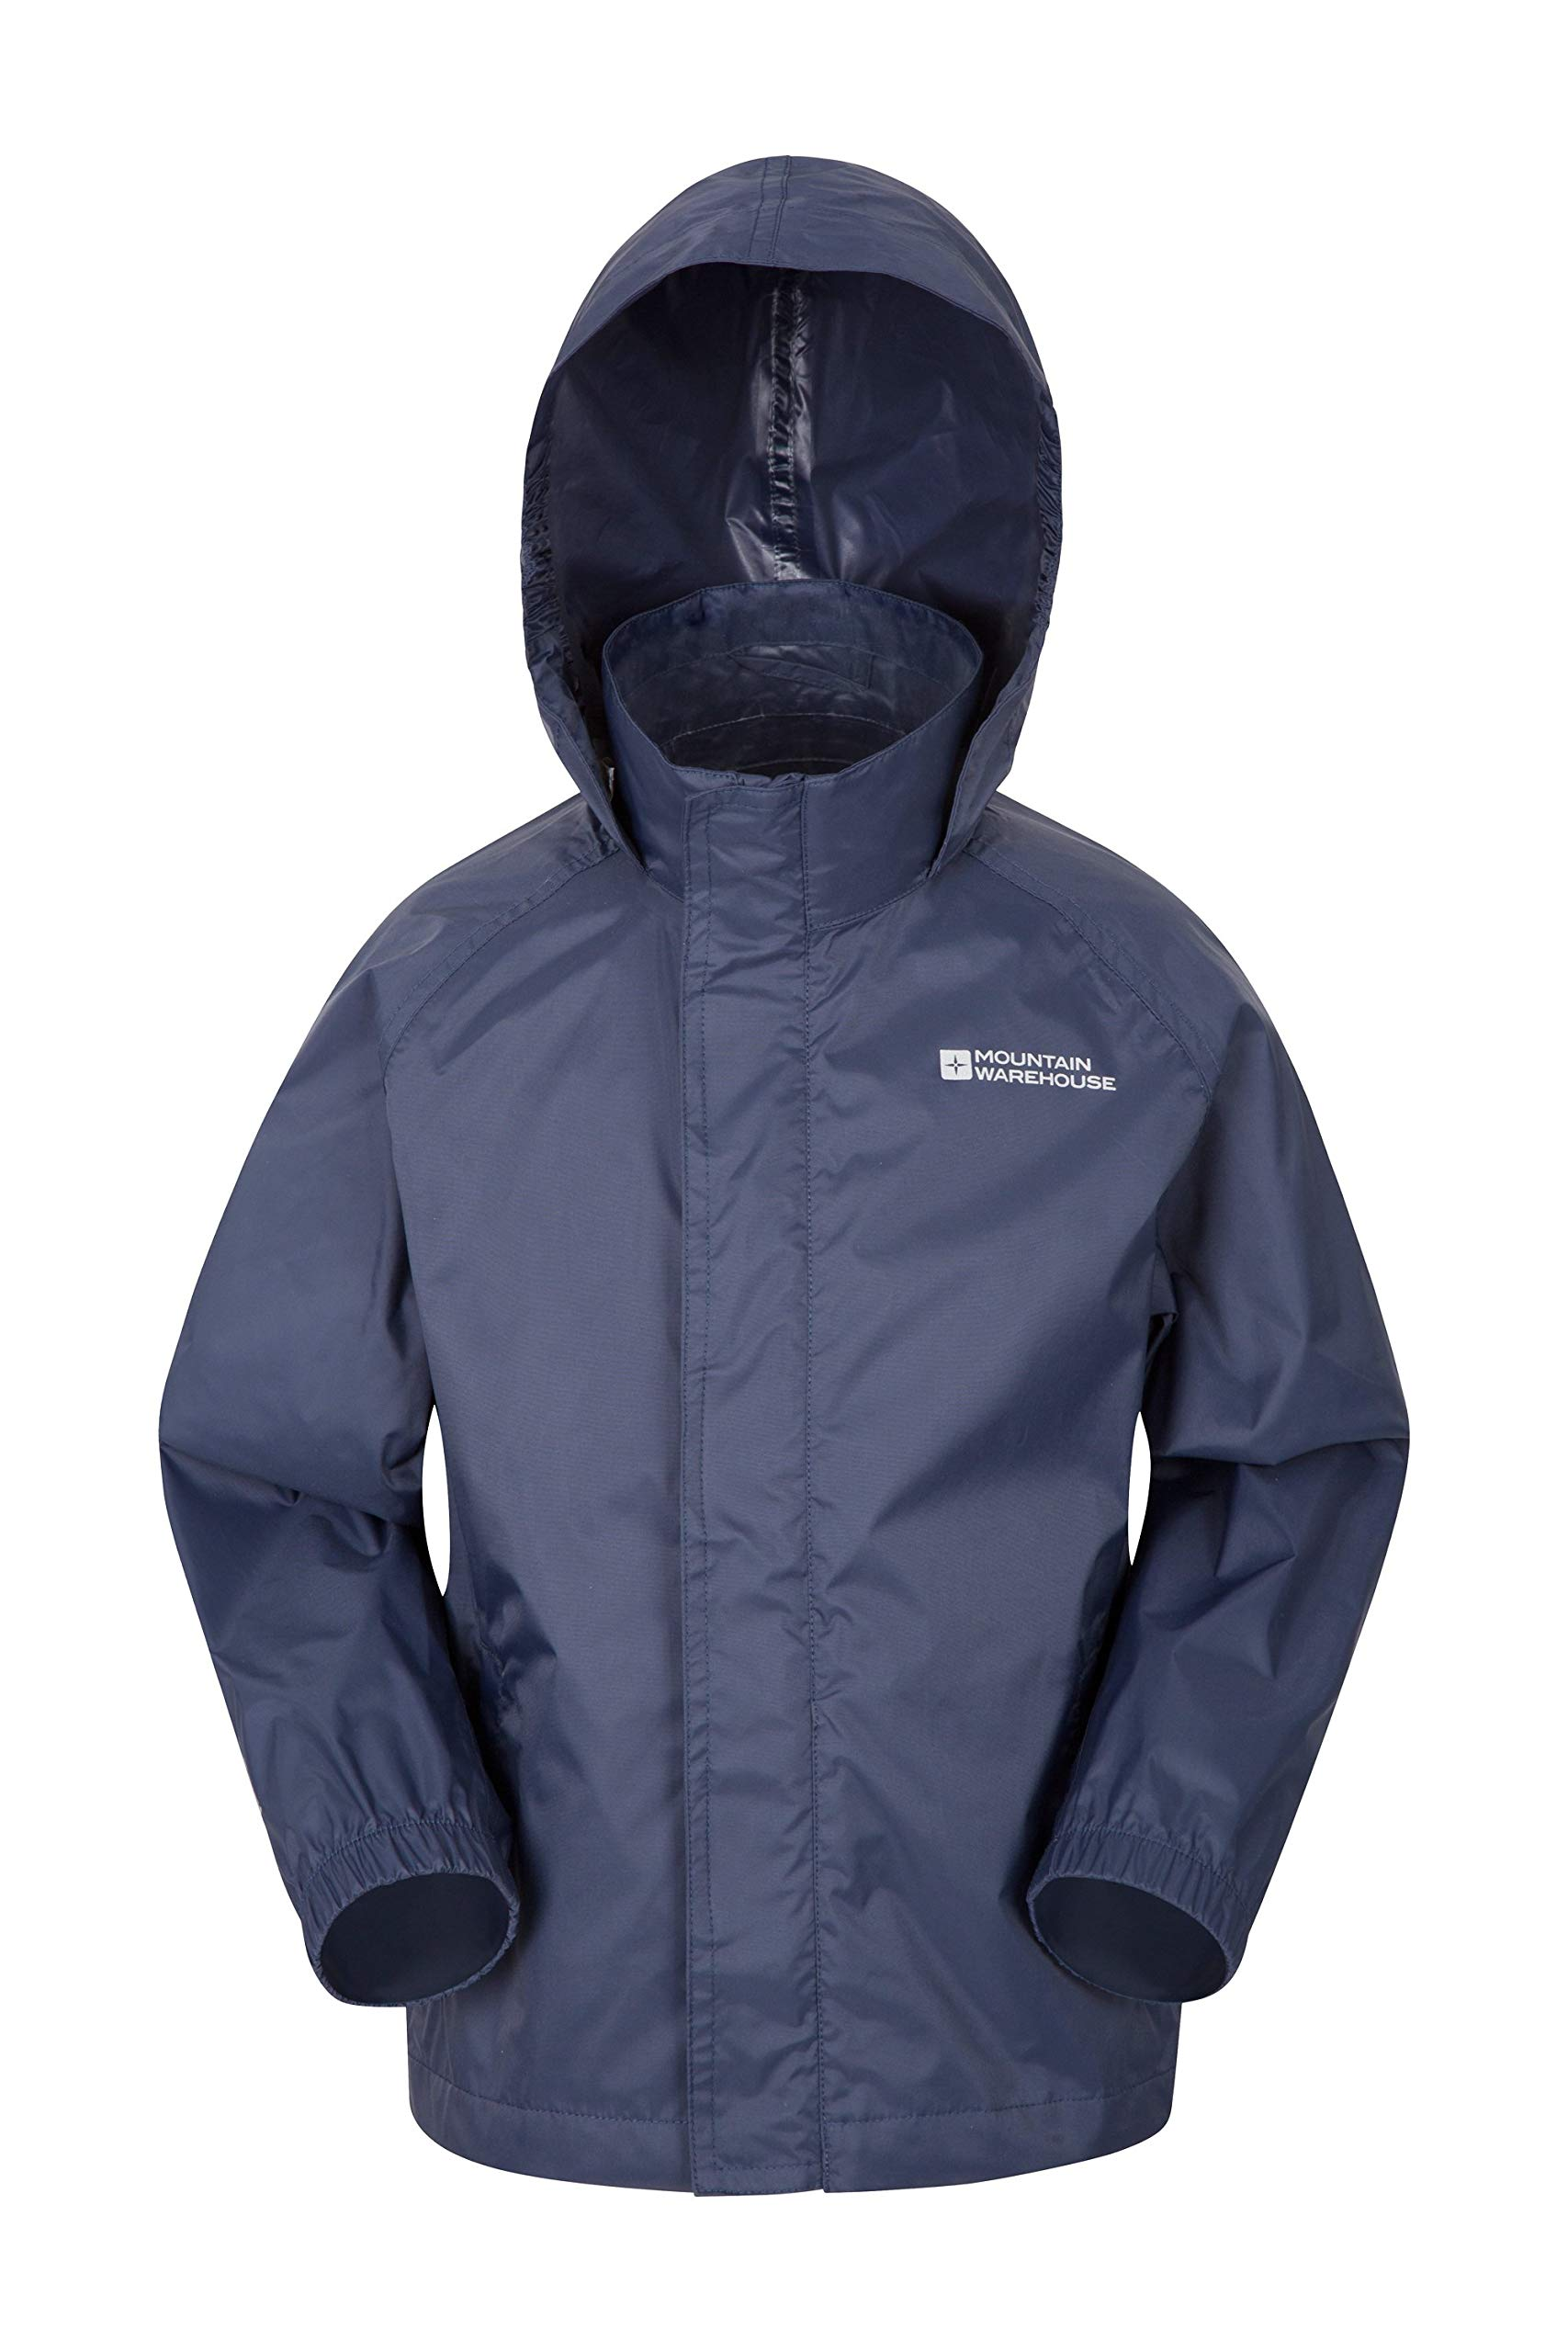 Mountain Warehouse Jacket Waterproof Childrens